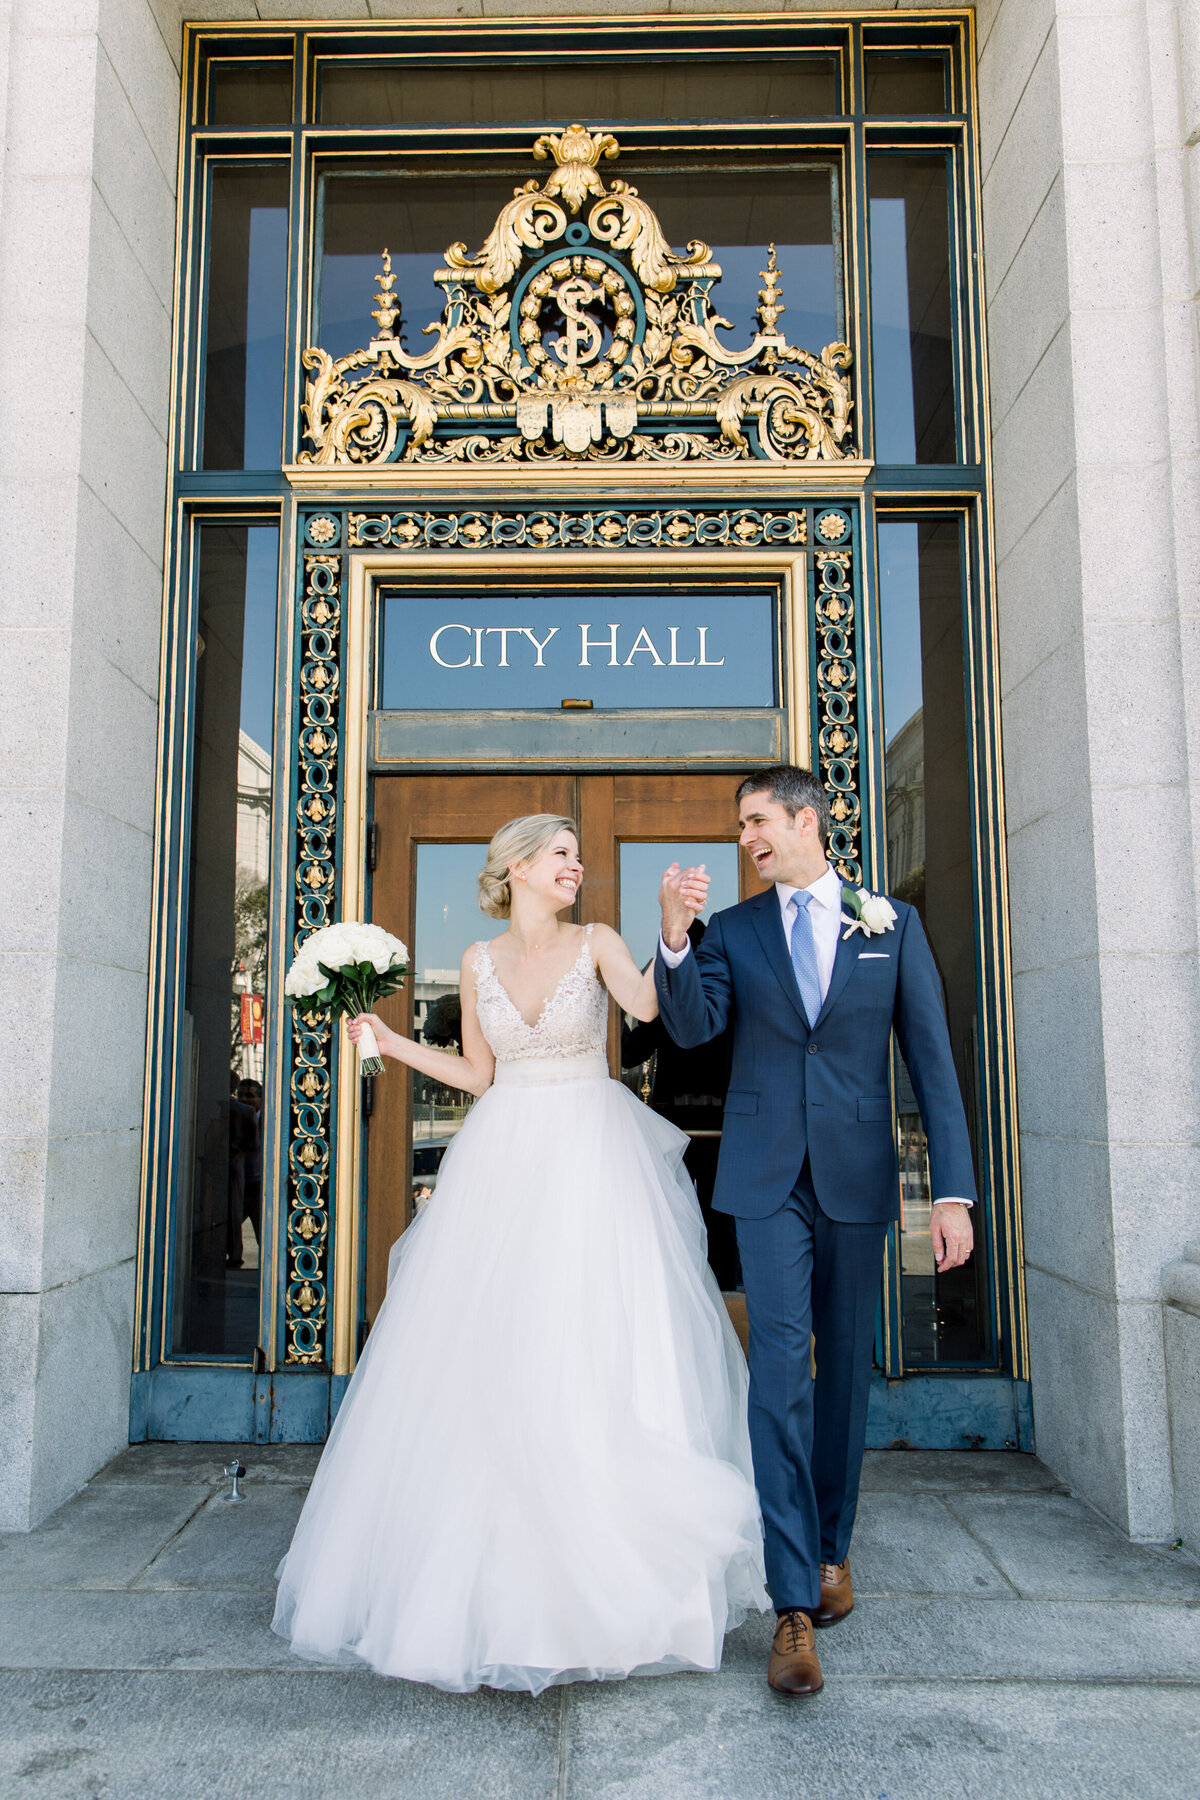 Best_San_Francisco_City_Hall_Wedding_photographer-019